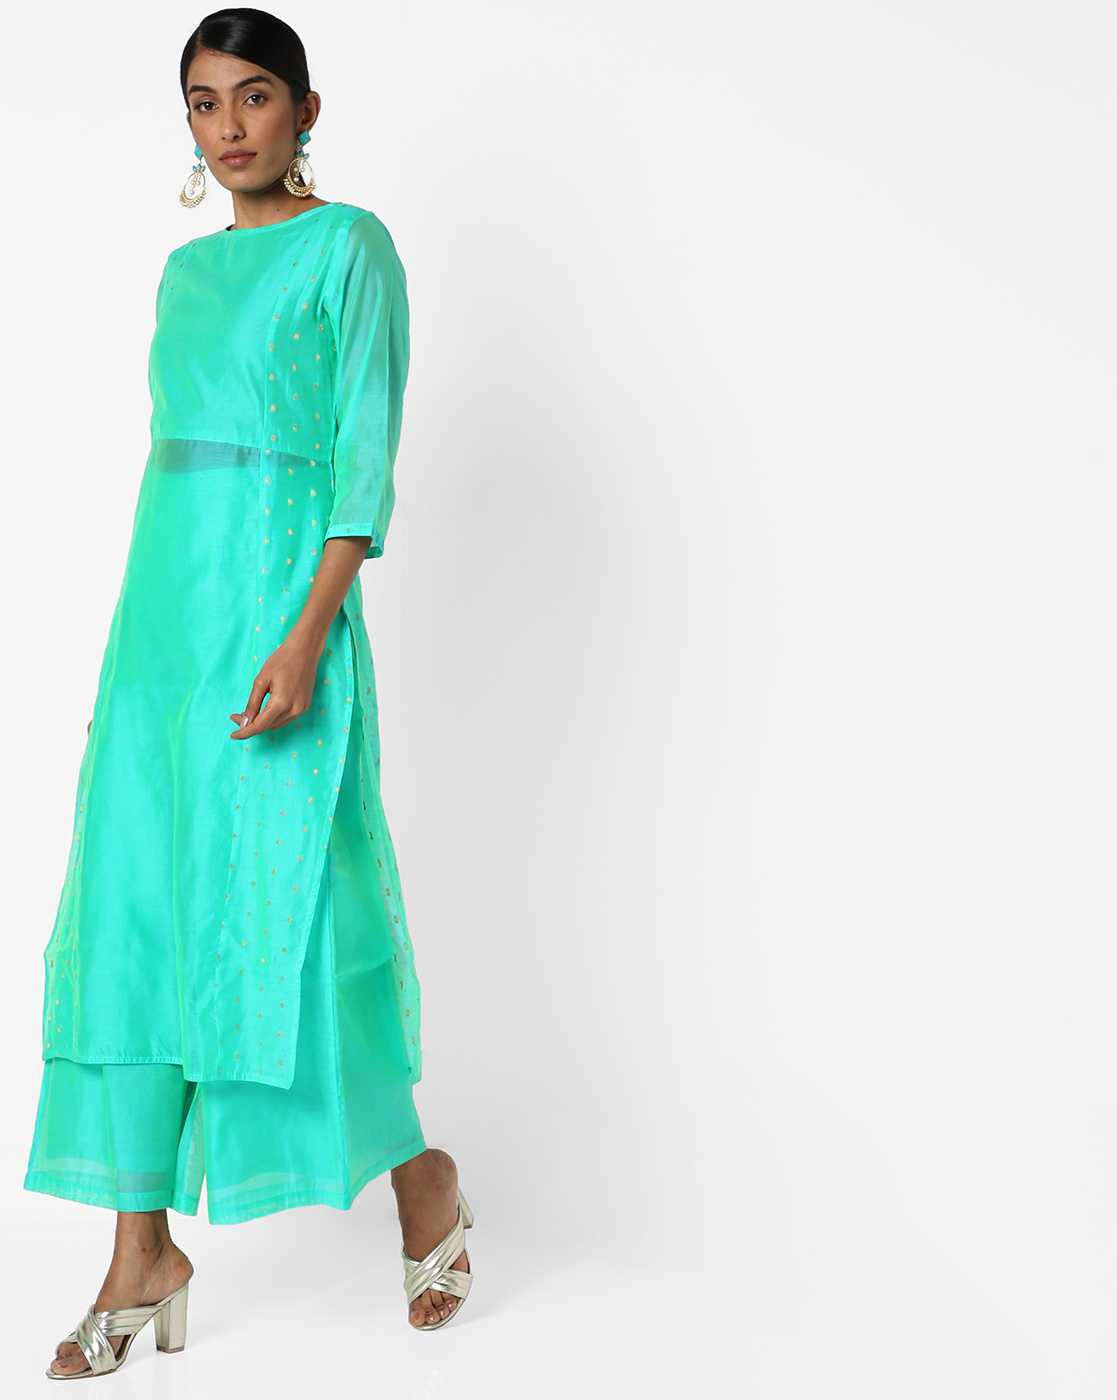 blue-green-chanderi-silk-kurti-for-wedding